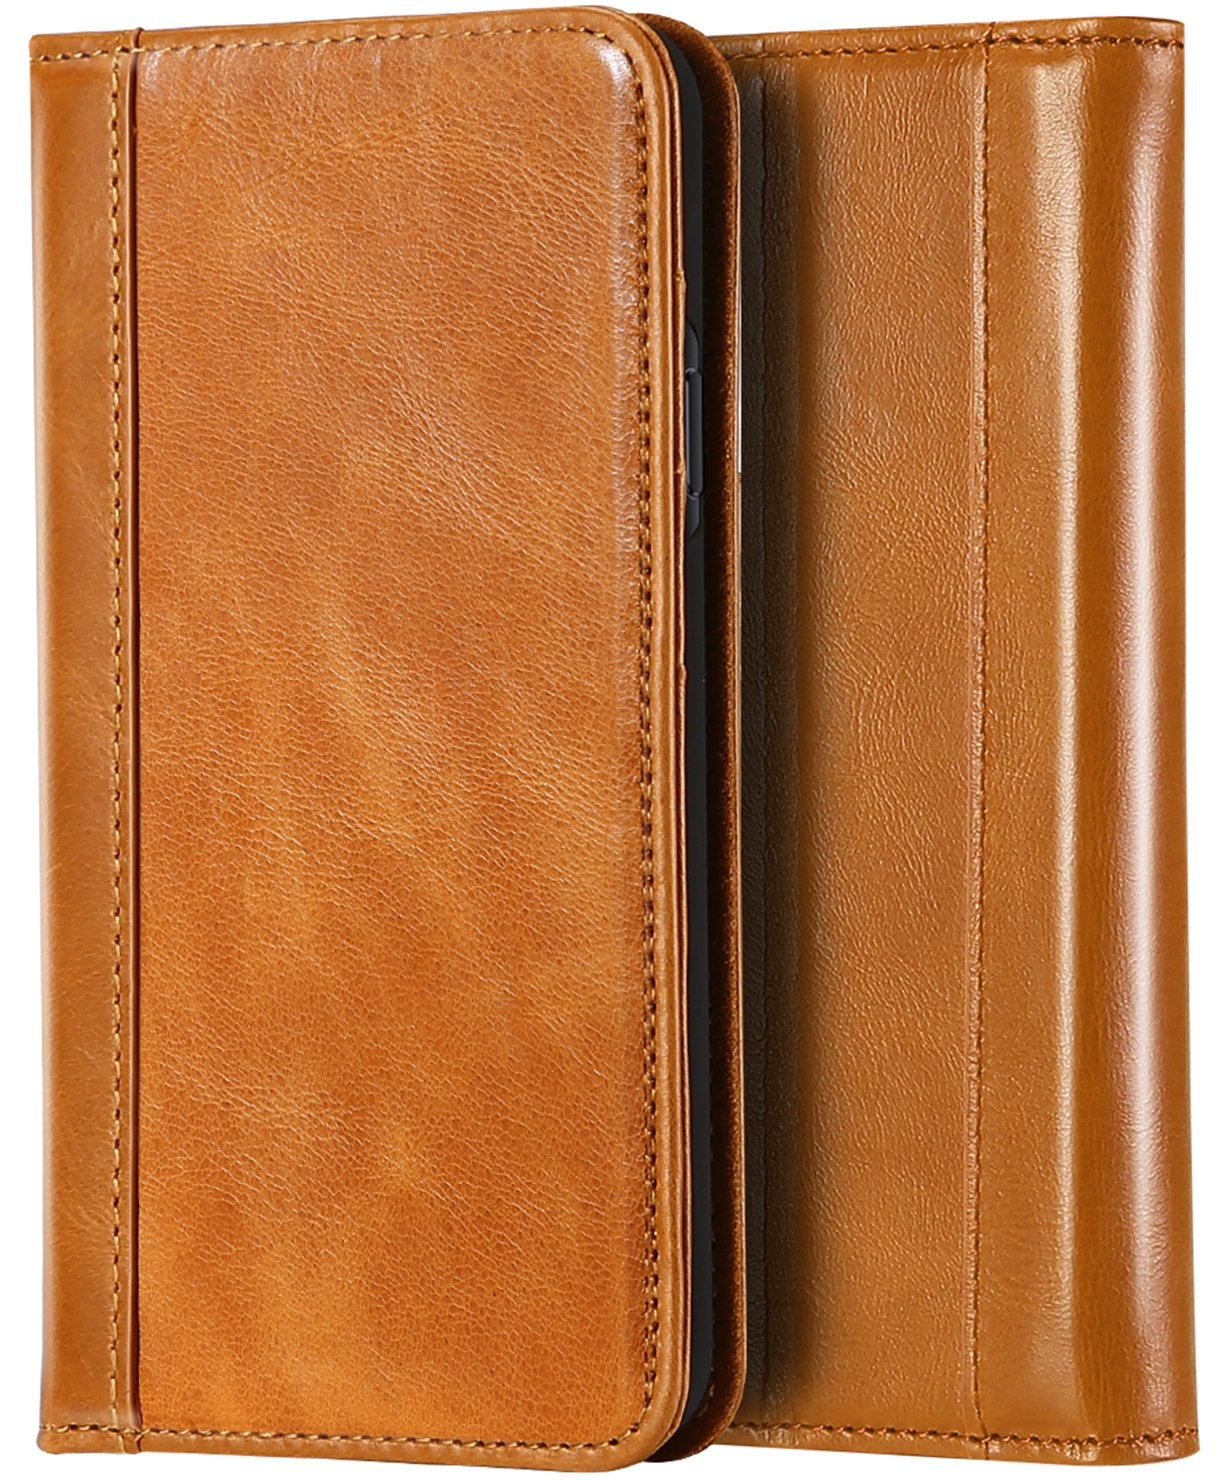 ProCase Genuine Leather Case for iPhone Xs Max, Vintage Wallet Folding Flip Case with Kickstand Card Holder Protective Cover for Apple iPhone Xs Max 6.5'' (2018 Release) -Brown